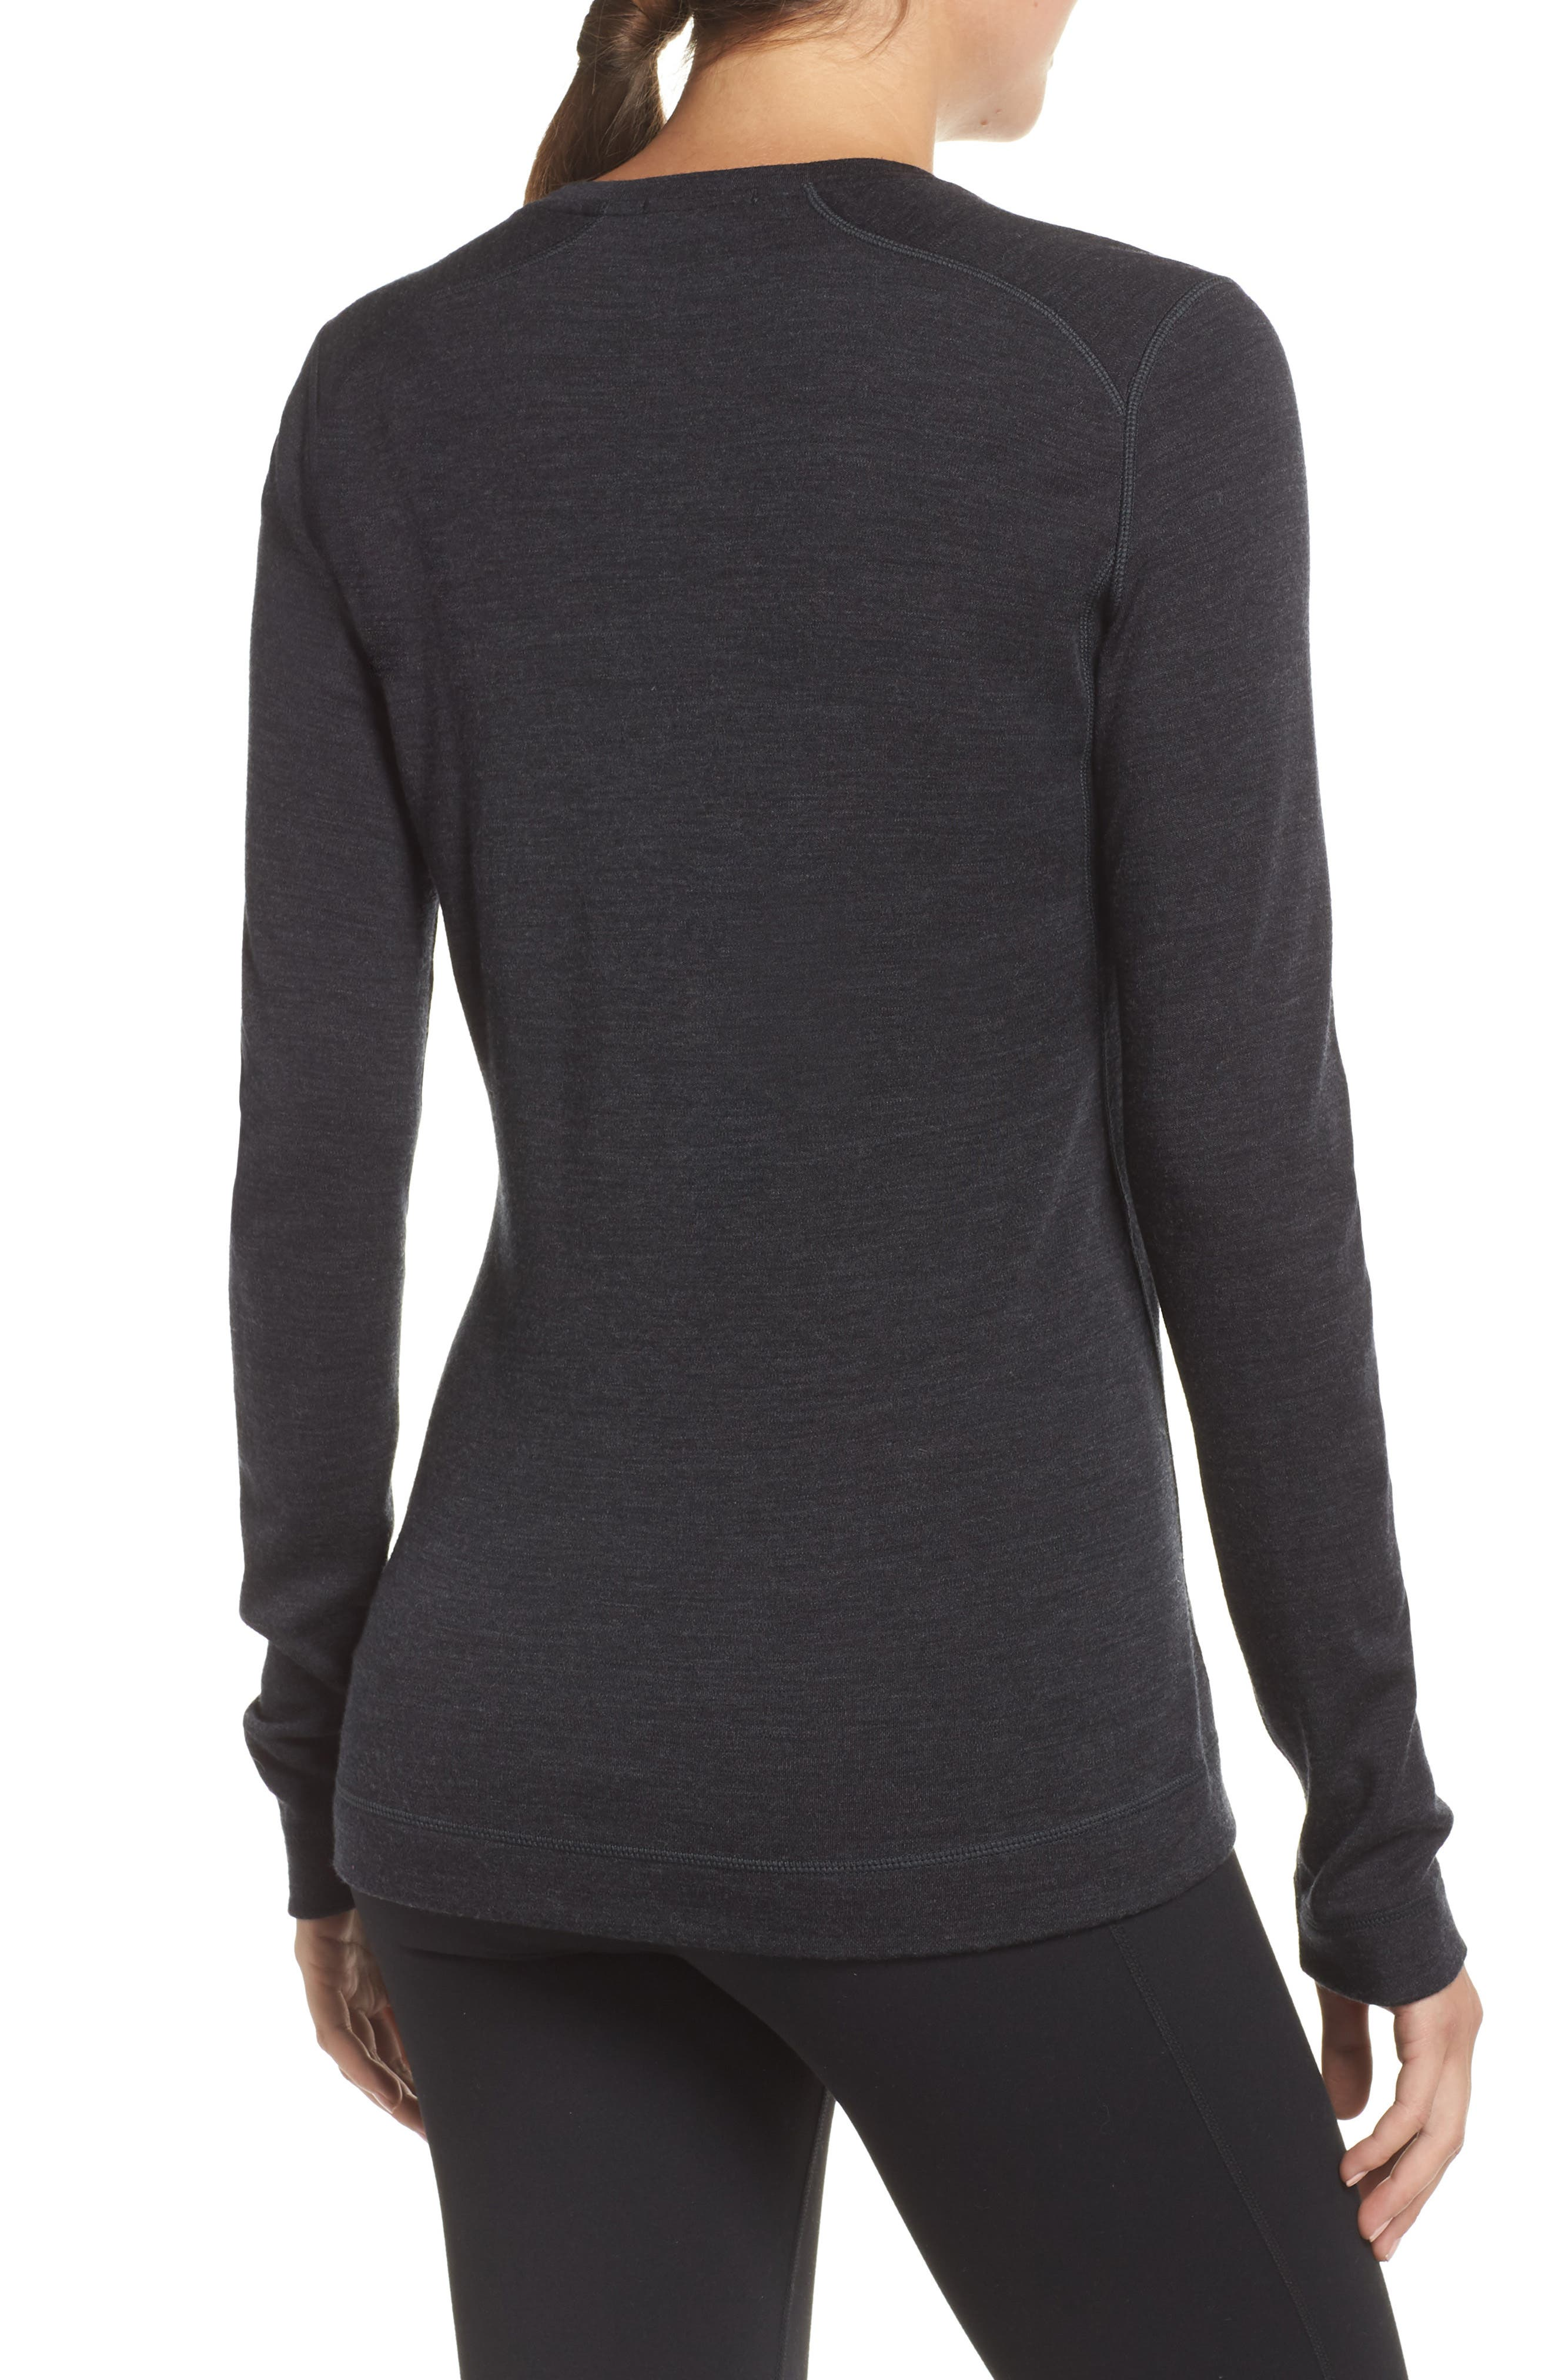 Merino 250 Base Layer Crew Top,                             Alternate thumbnail 2, color,                             CHARCOAL HEATHER